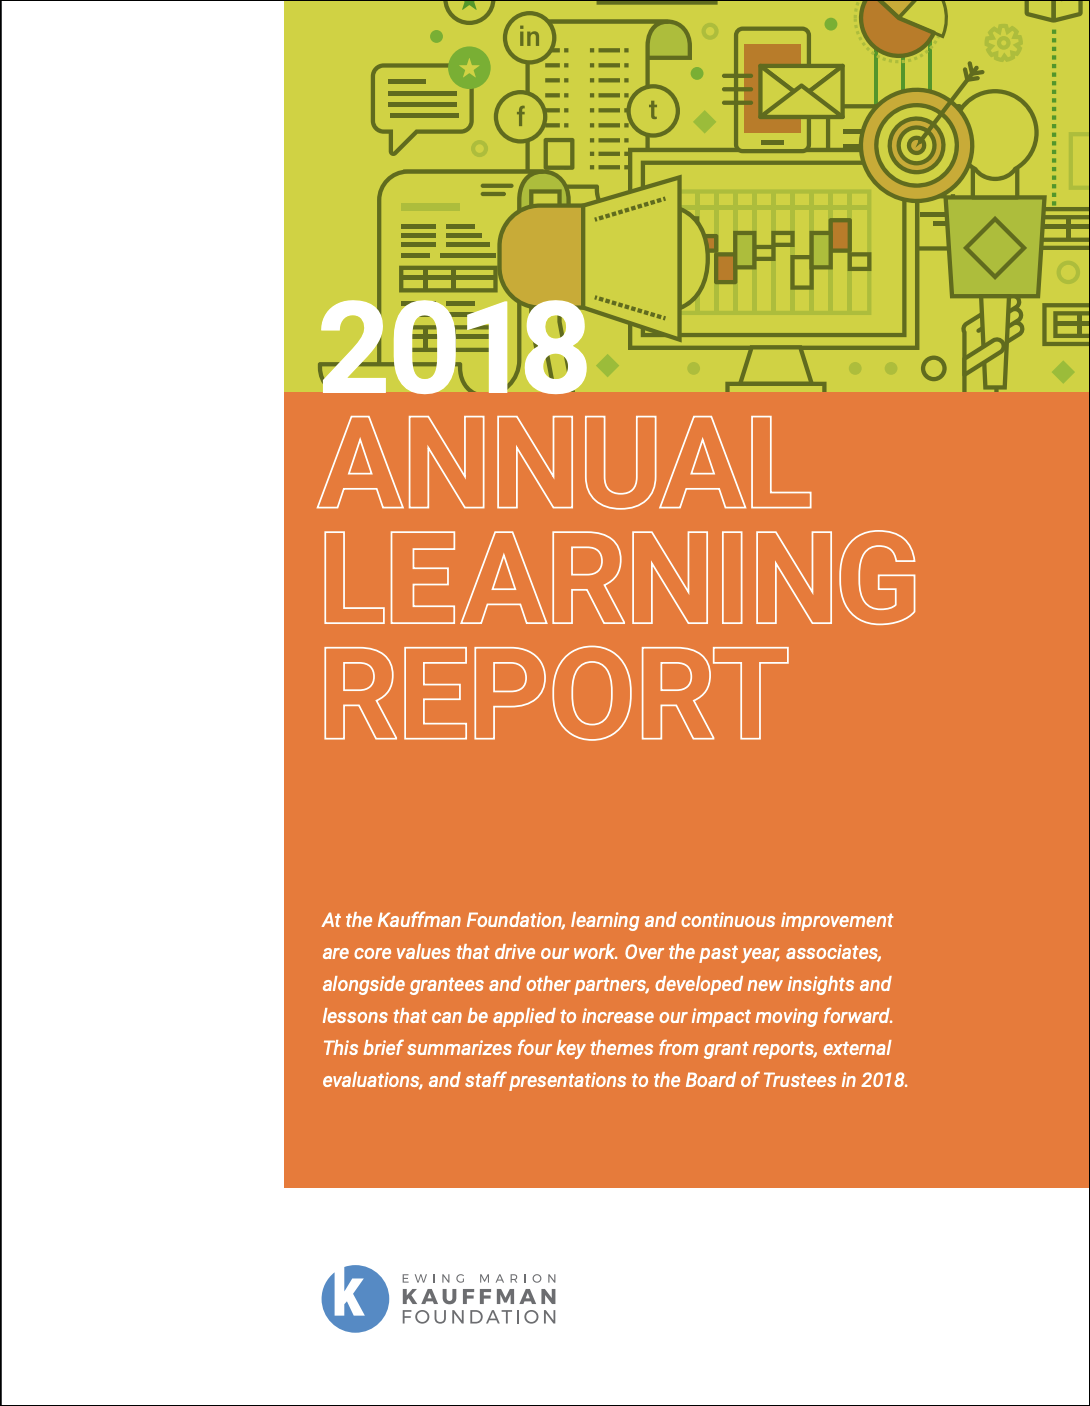 Kauffman Foundation Annual Learning Report 2018